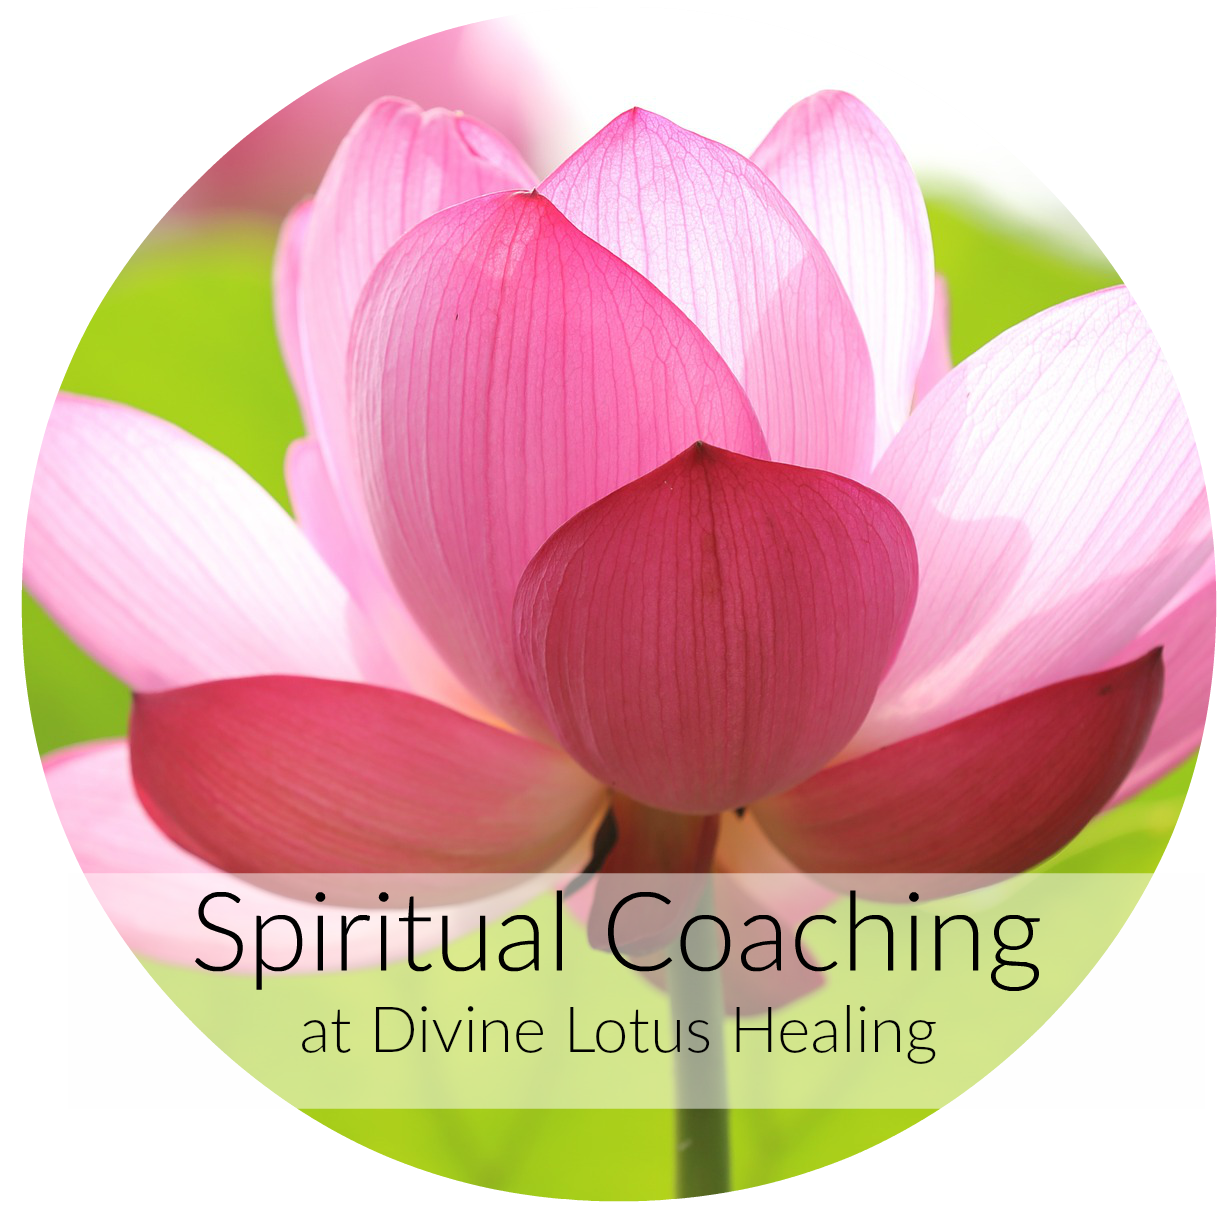 Spiritual Coaching at Divine Lotus Healing